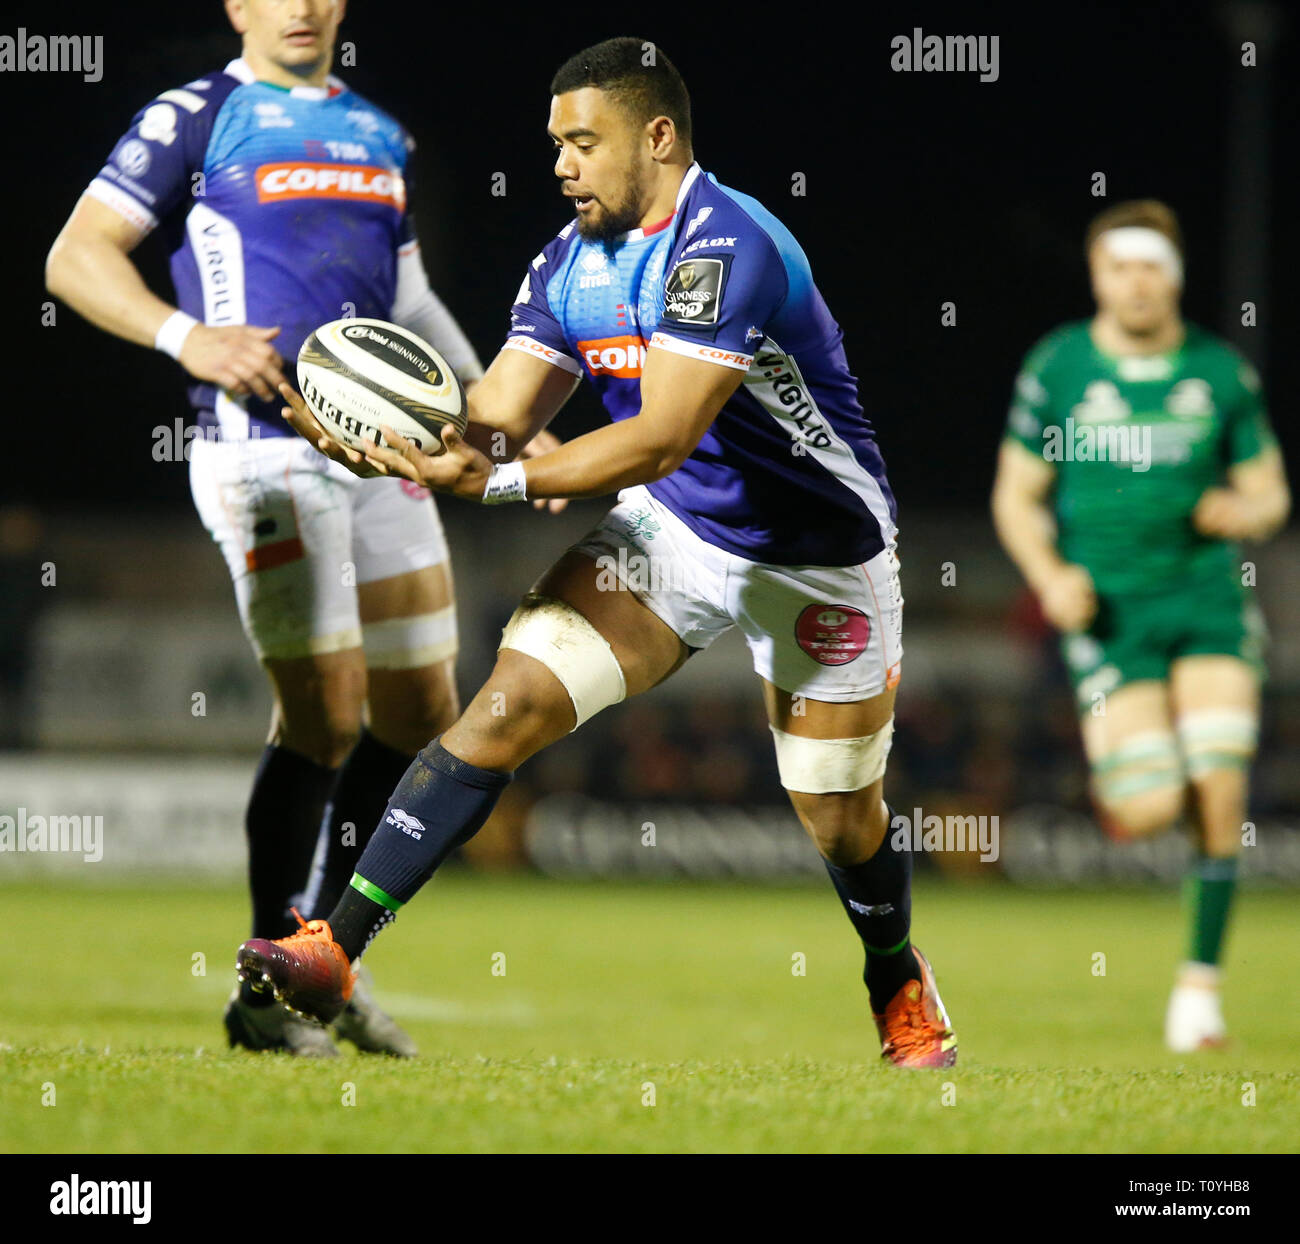 Galway Sports Ground, Galway, Ireland. 22nd Mar, 2019. Guinness Pro14 rugby, Connacht versus Benetton; Toa Halafihi holds on to the ball for Benetton Credit: Action Plus Sports/Alamy Live News - Stock Image